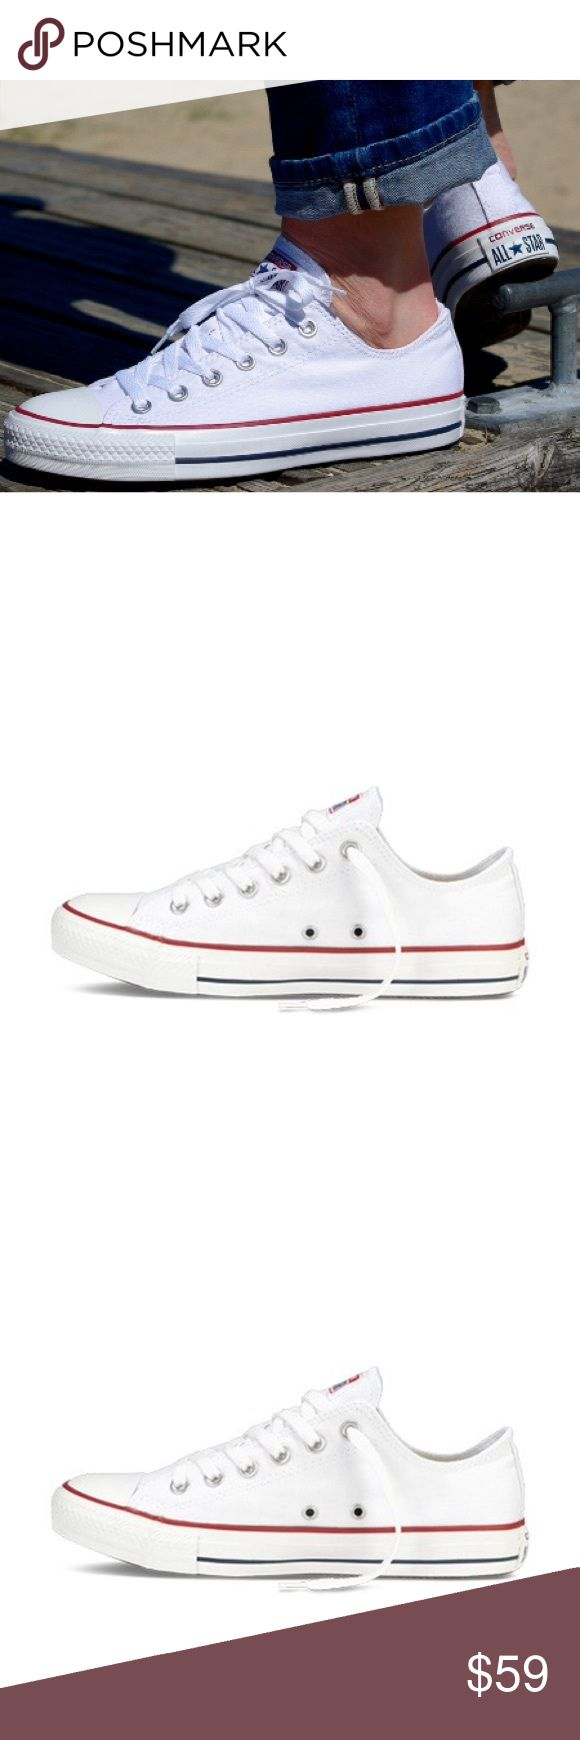 Converse womens size 6 white chuck Taylor's shoes Brand new with box. WOMENS size 6 Converse Shoes Sneakers